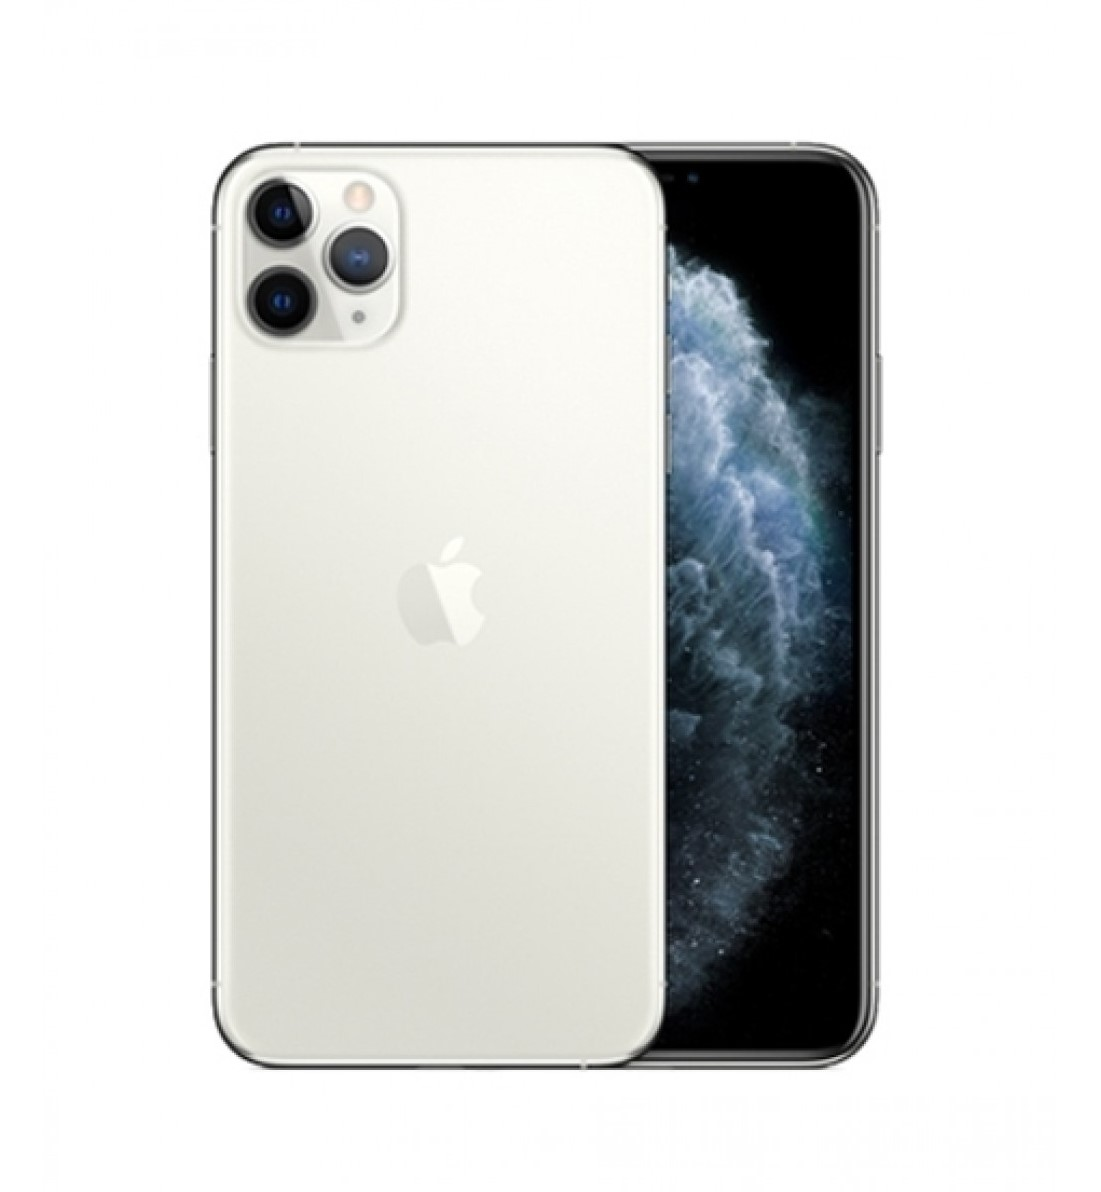 iPhone 11 Pro Full Specifications